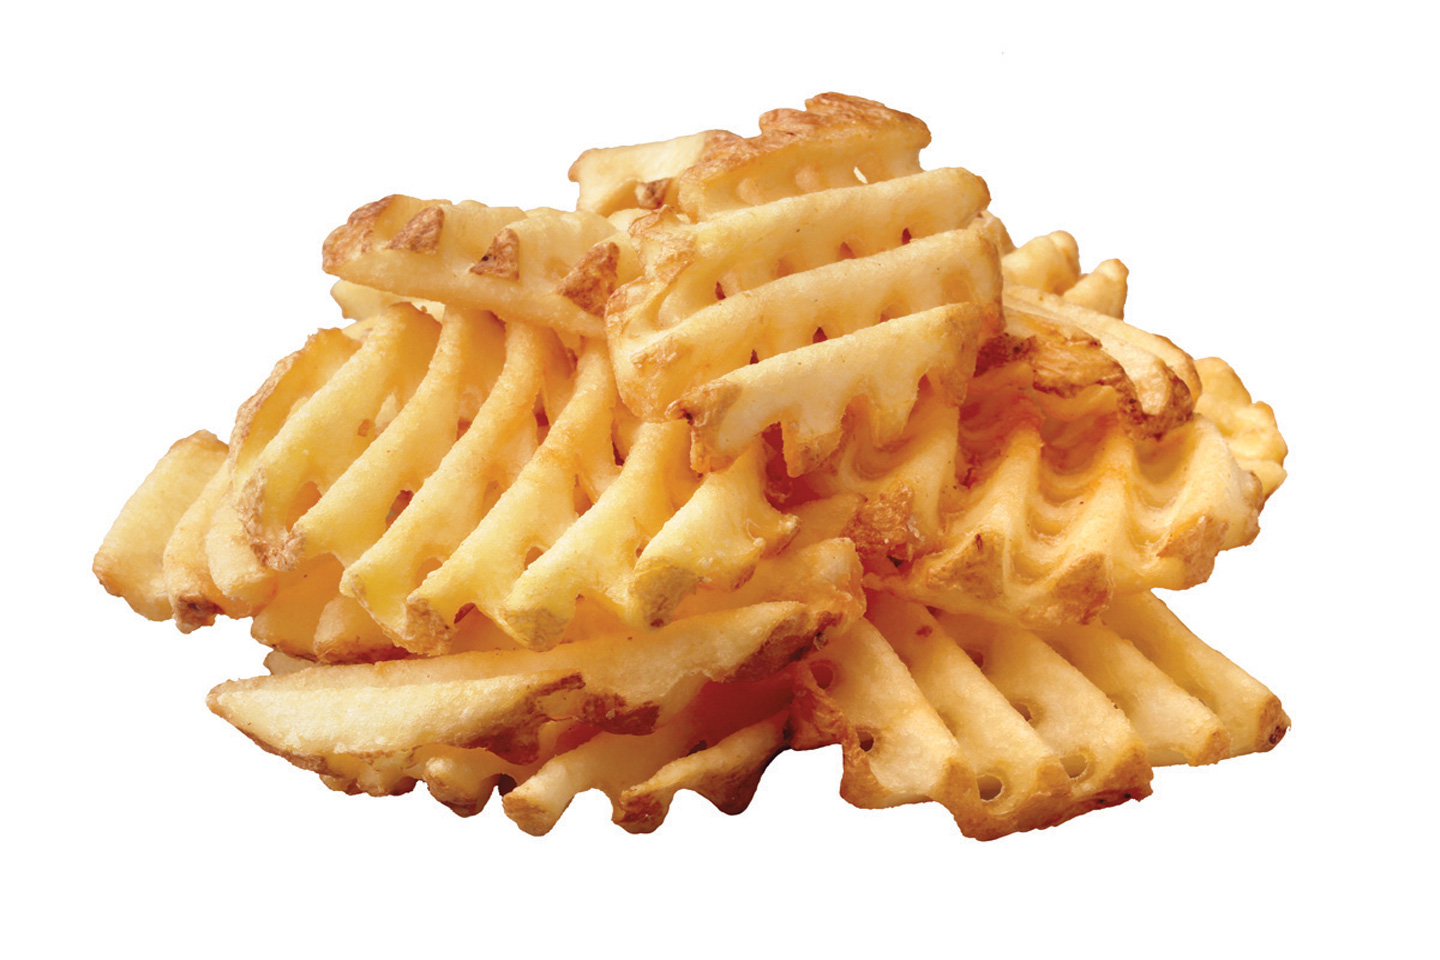 A stack of Waffle Potato Fries from Chick-fil-A.